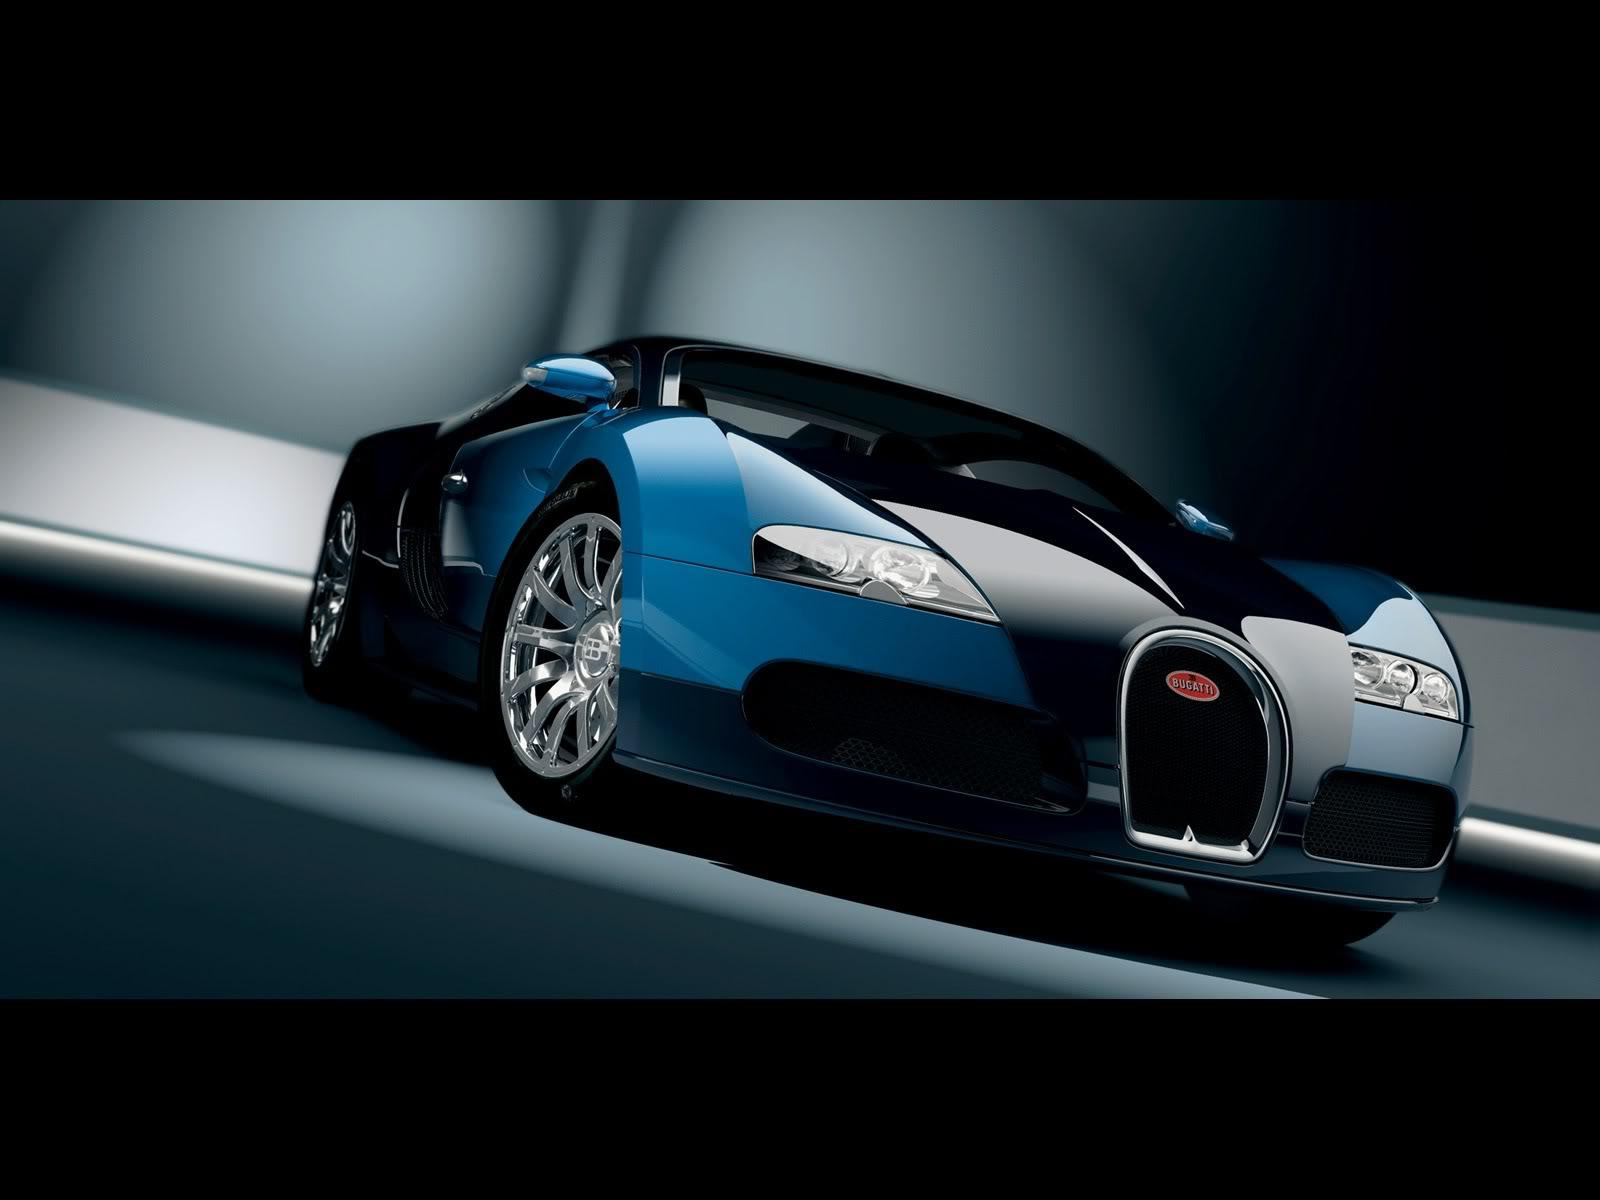 Collection Of Desktop Background Cars On HDWallpapers